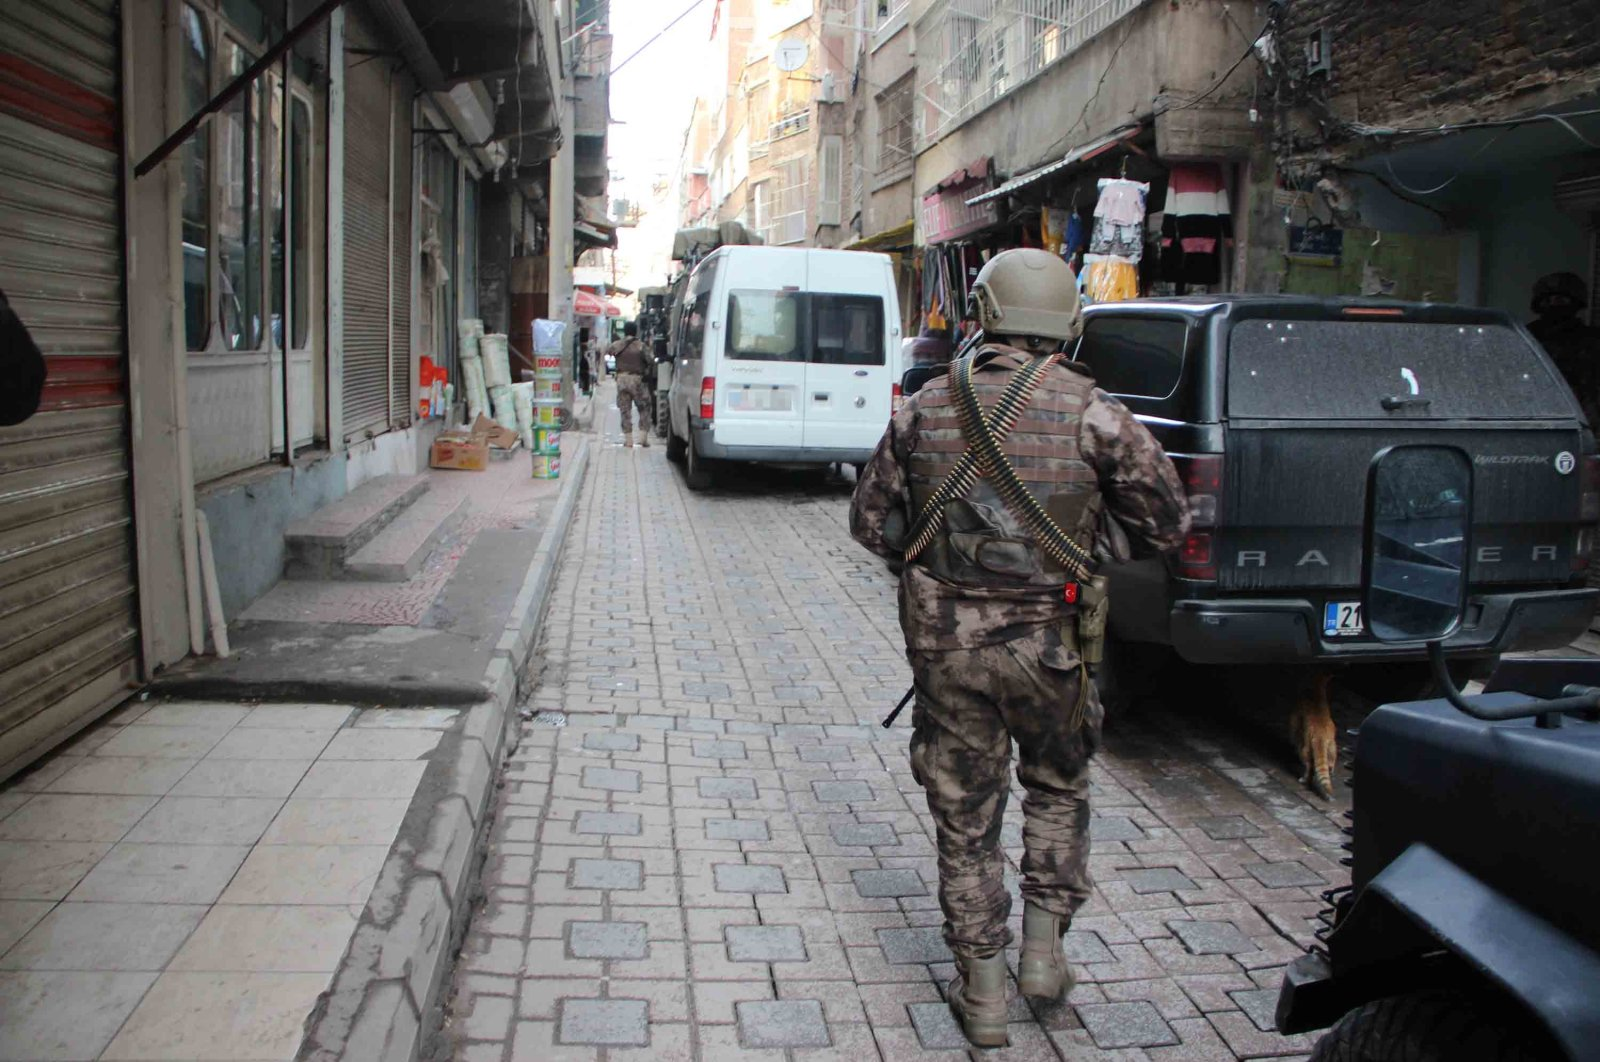 A special operations officer participates in a counterterrorism operation in Diyarbakır, southeastern Turkey, June 14, 2021. (AA Photo)